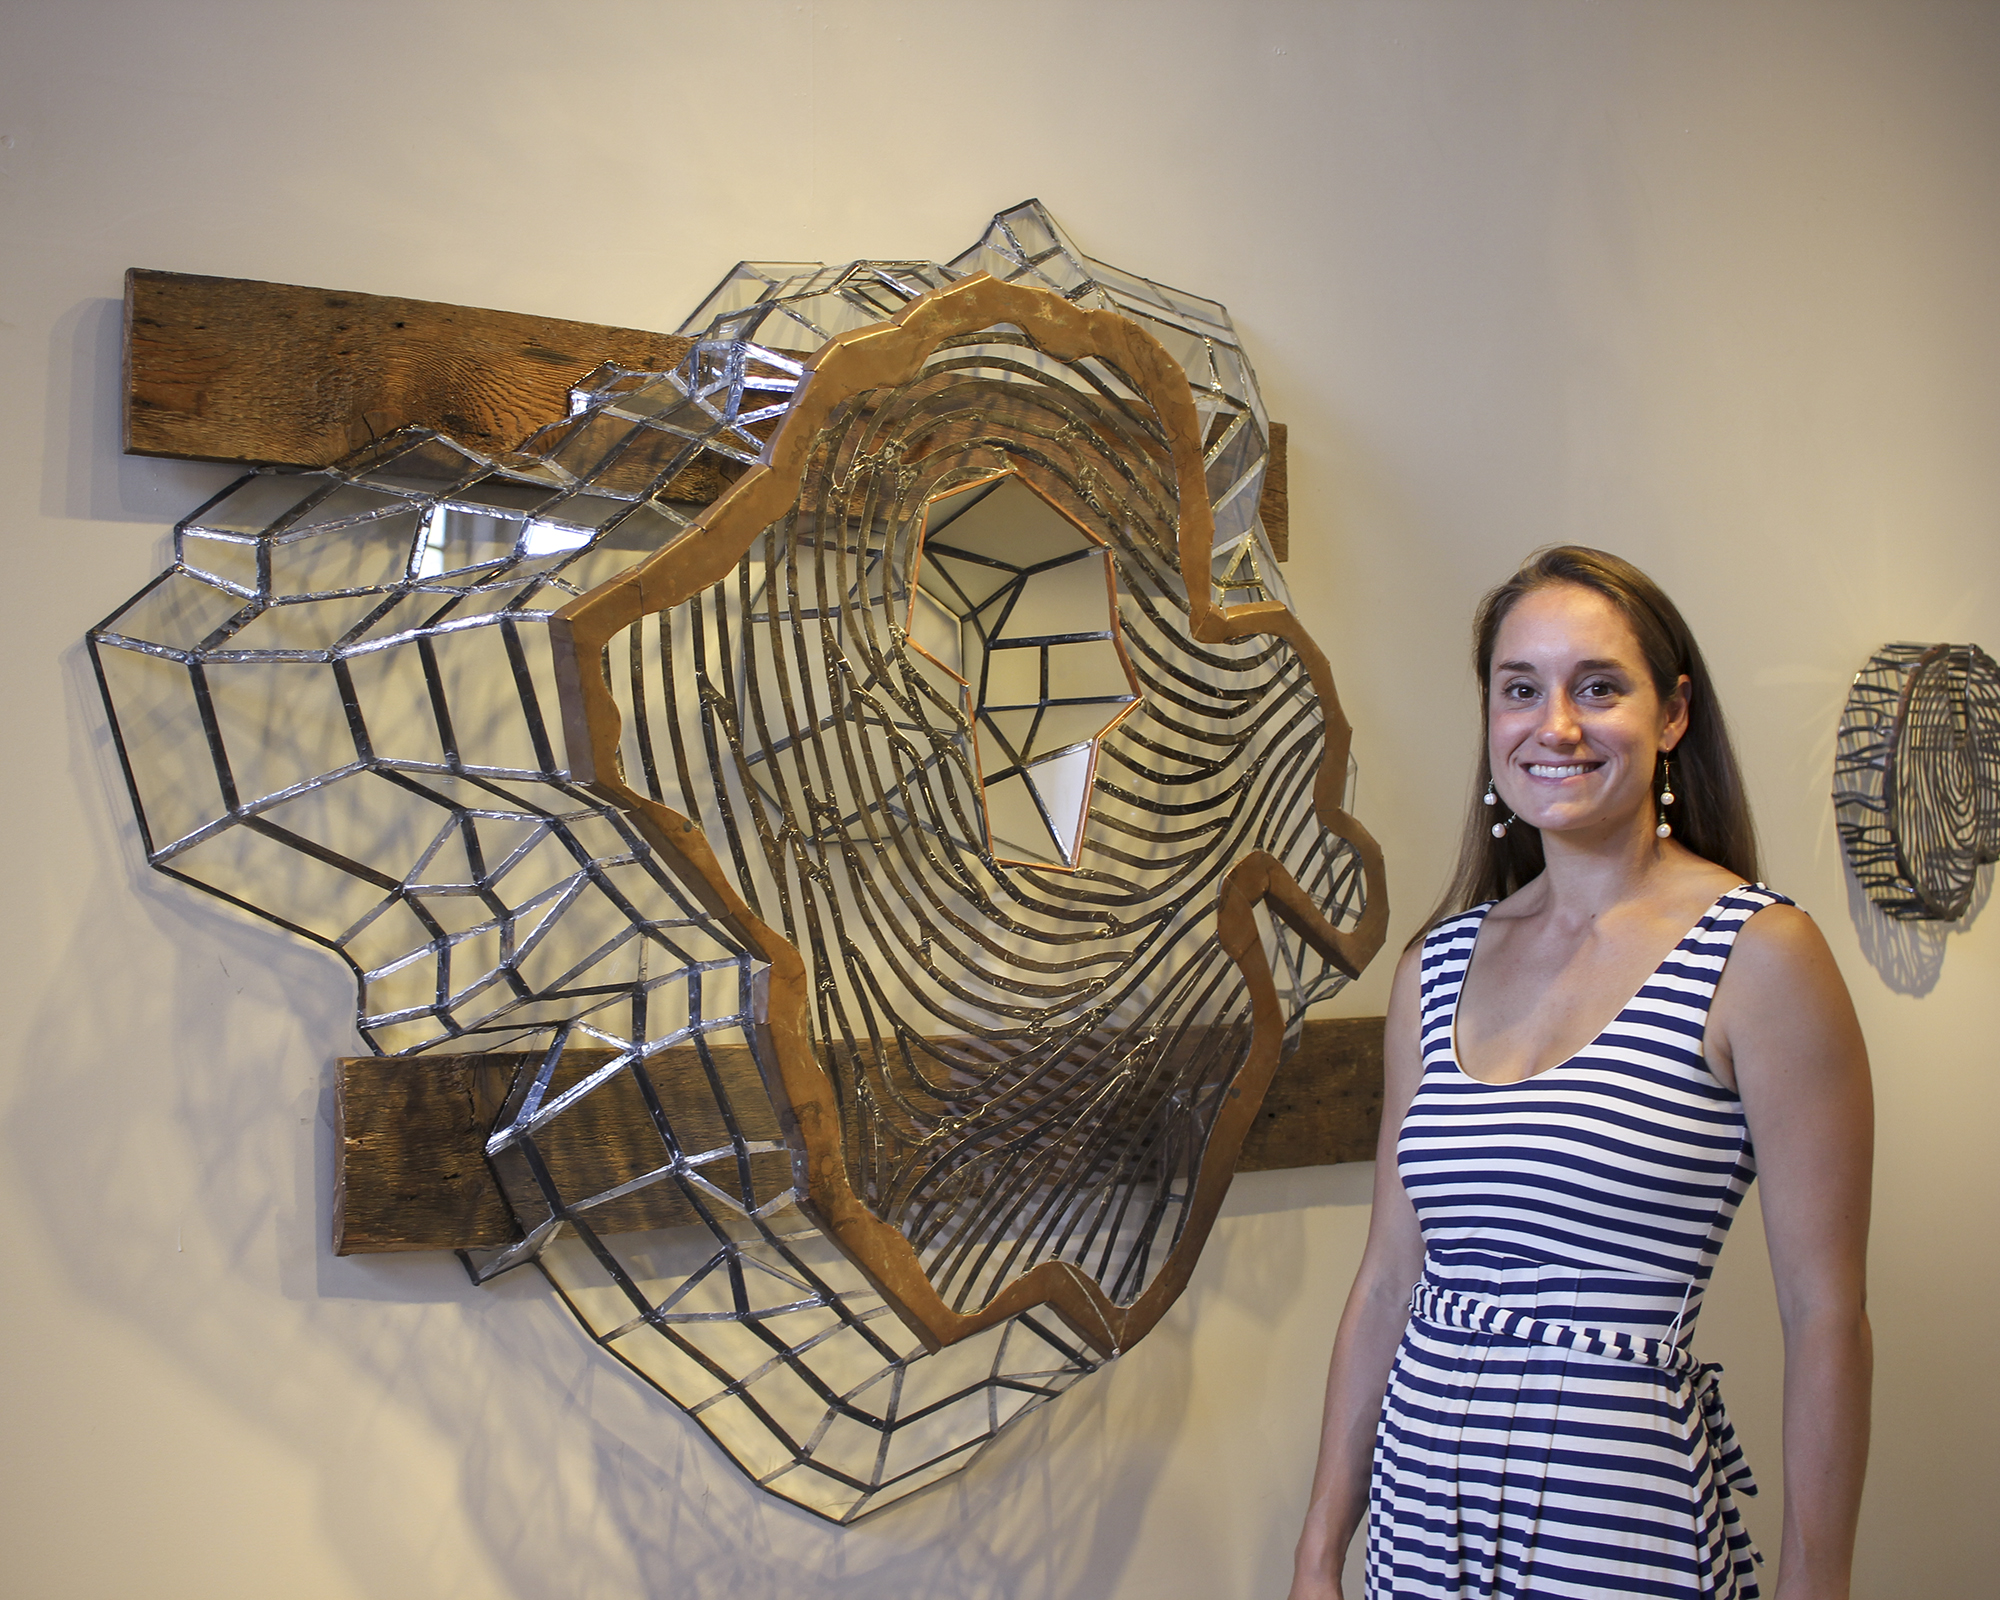 Stefania Urist stands by one of her sculptures mounted on a wall